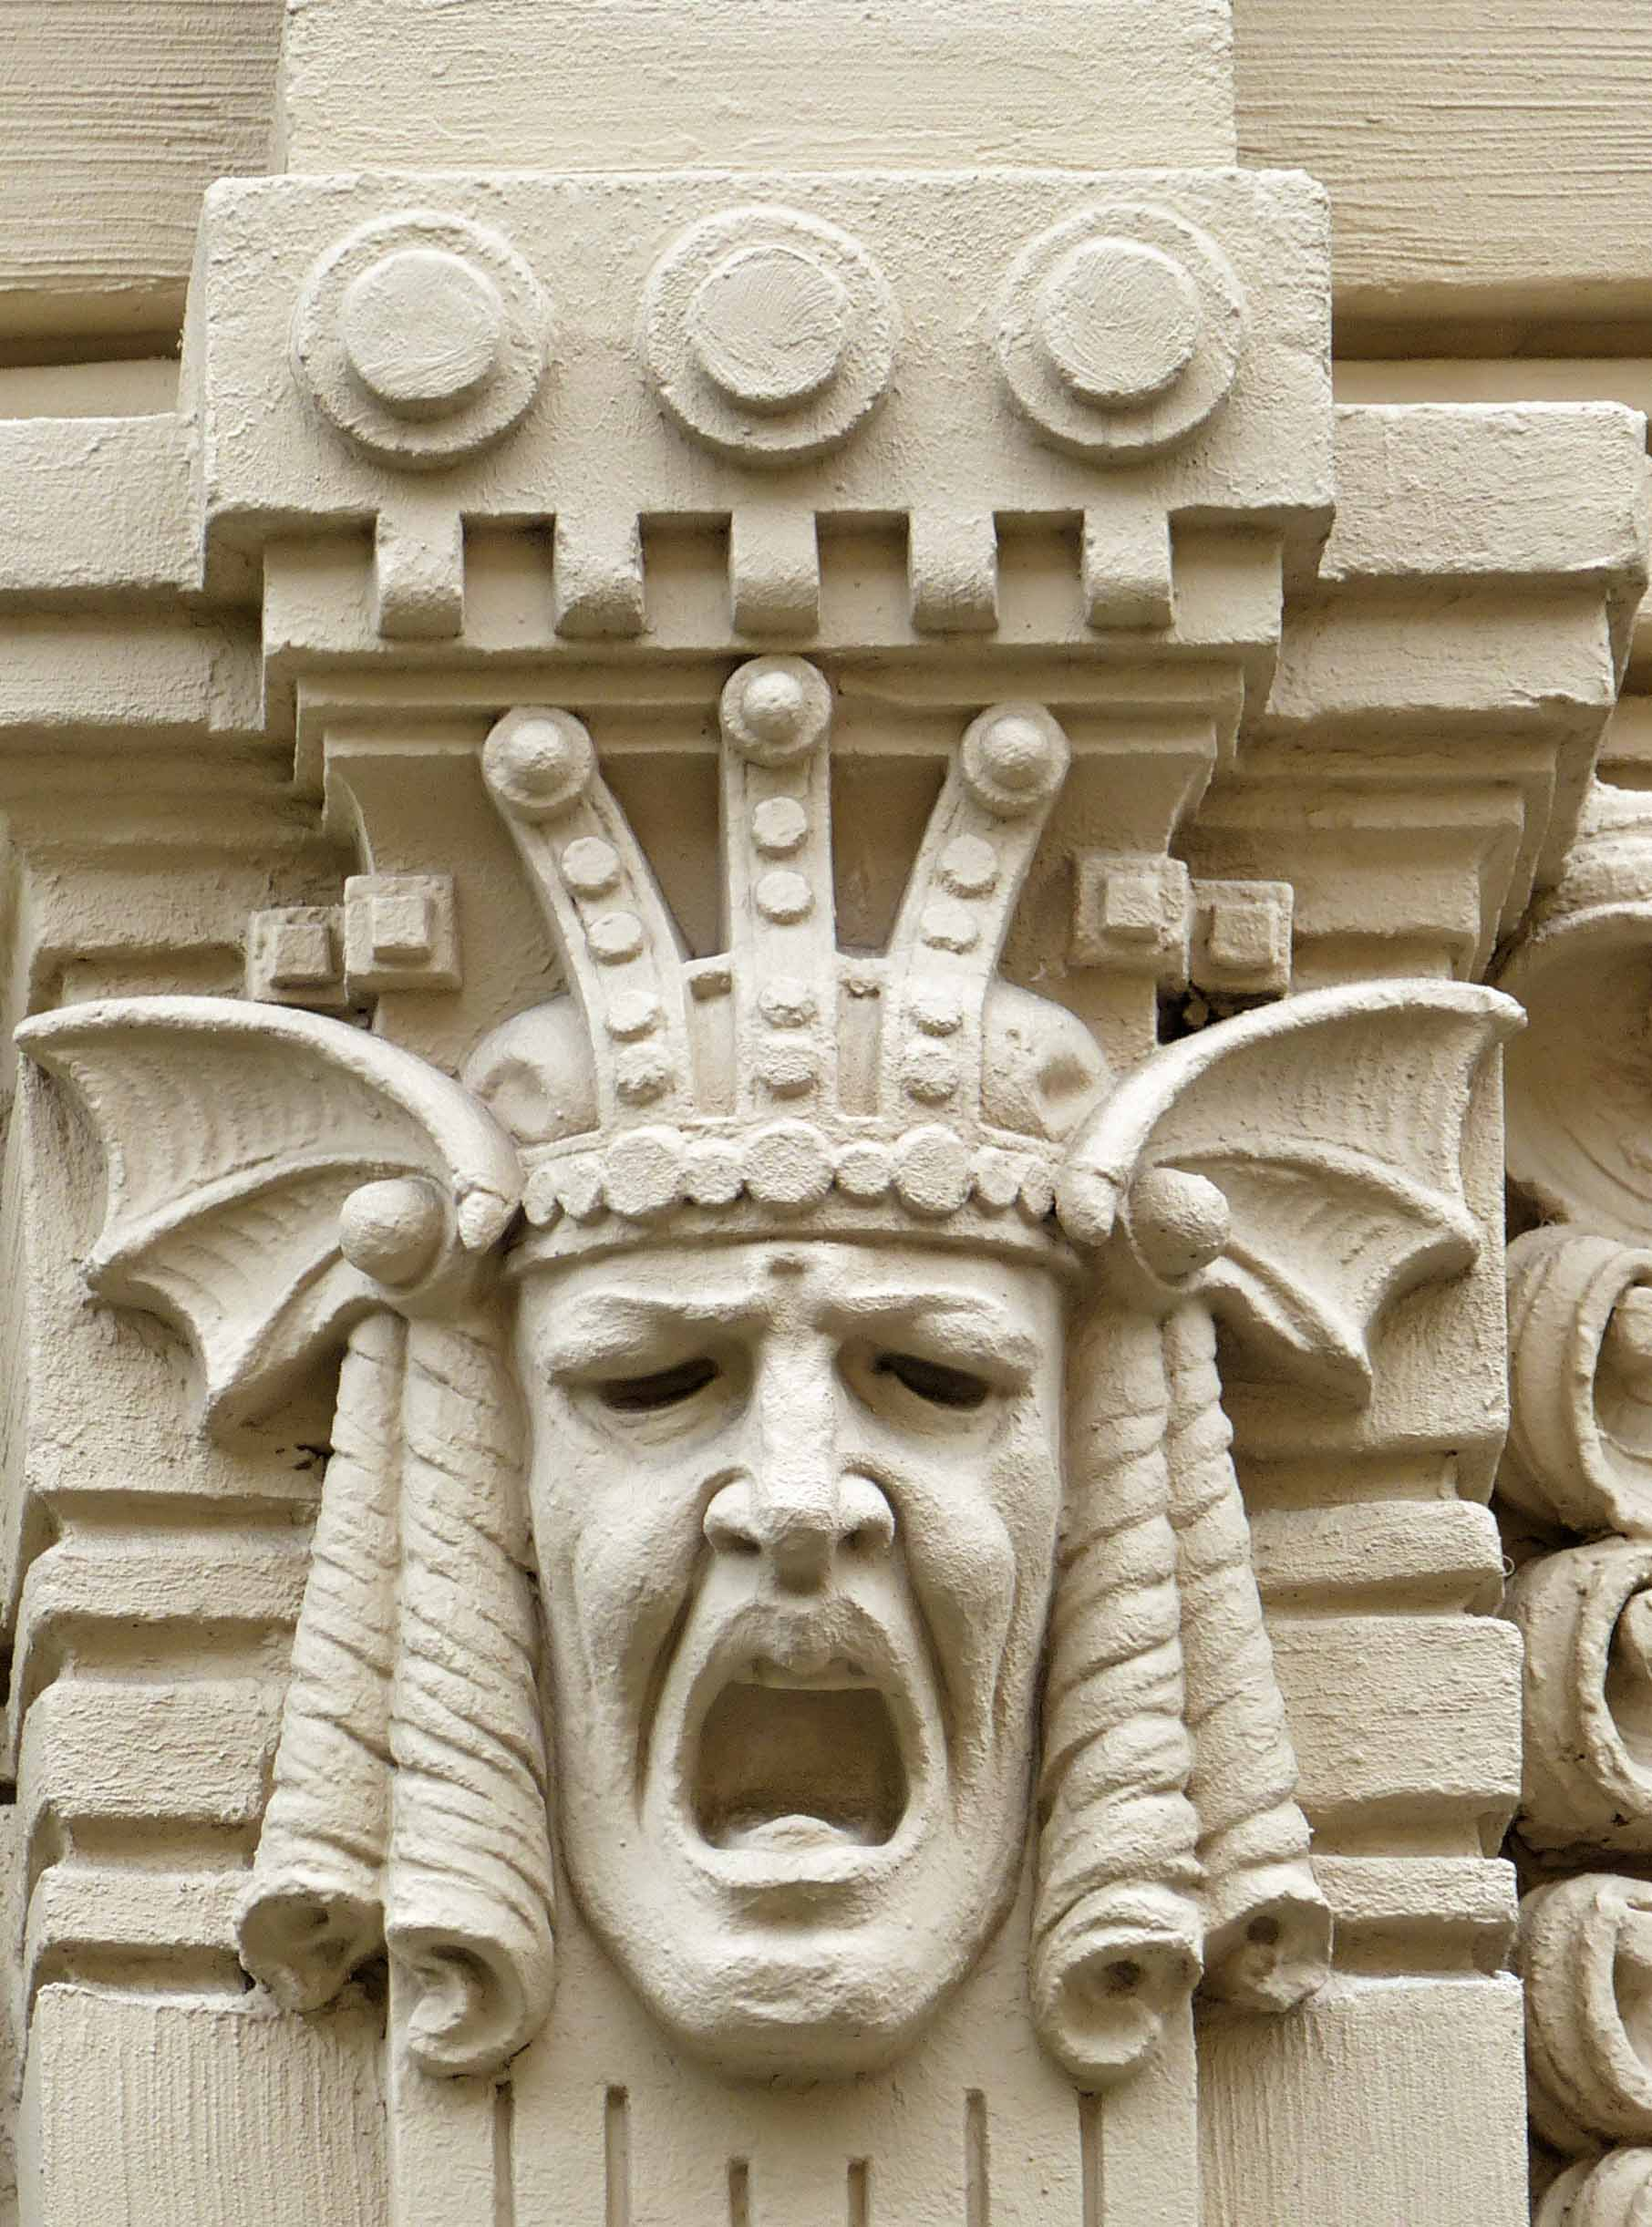 Fierce face with headdress carved in stone